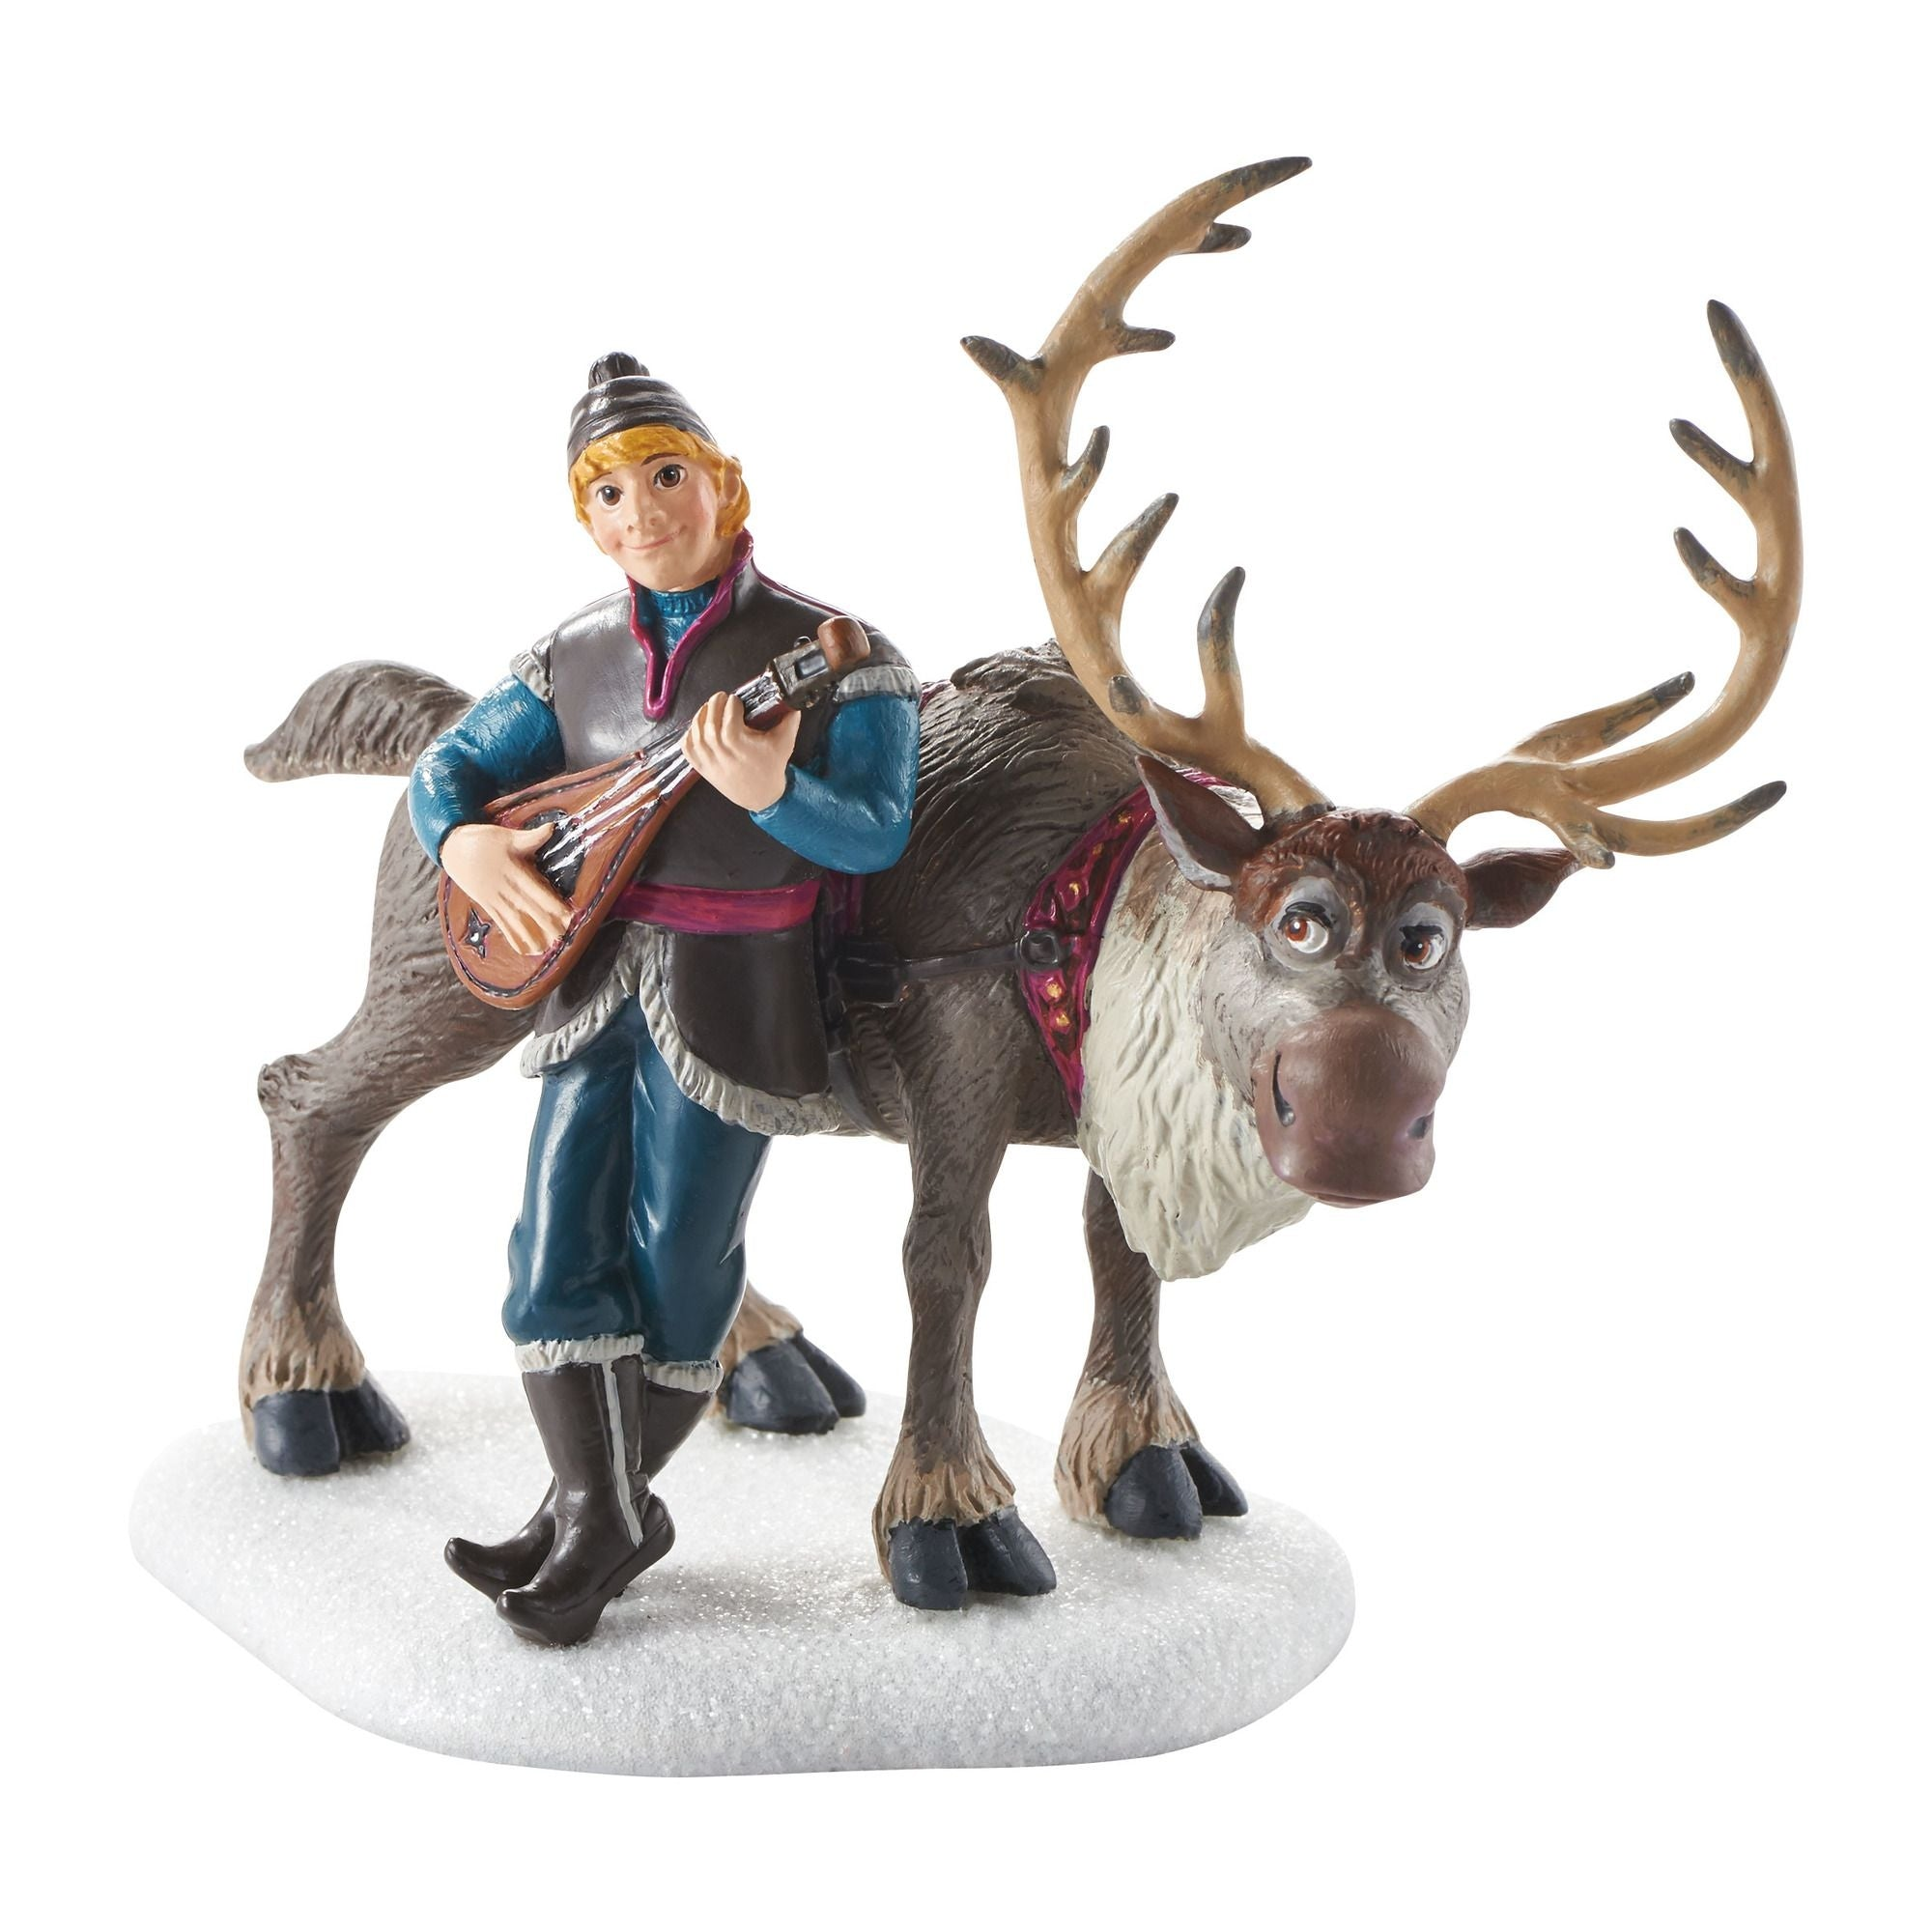 Disney Frozen Village Kristoff Serenading Sven Accessory Figurine